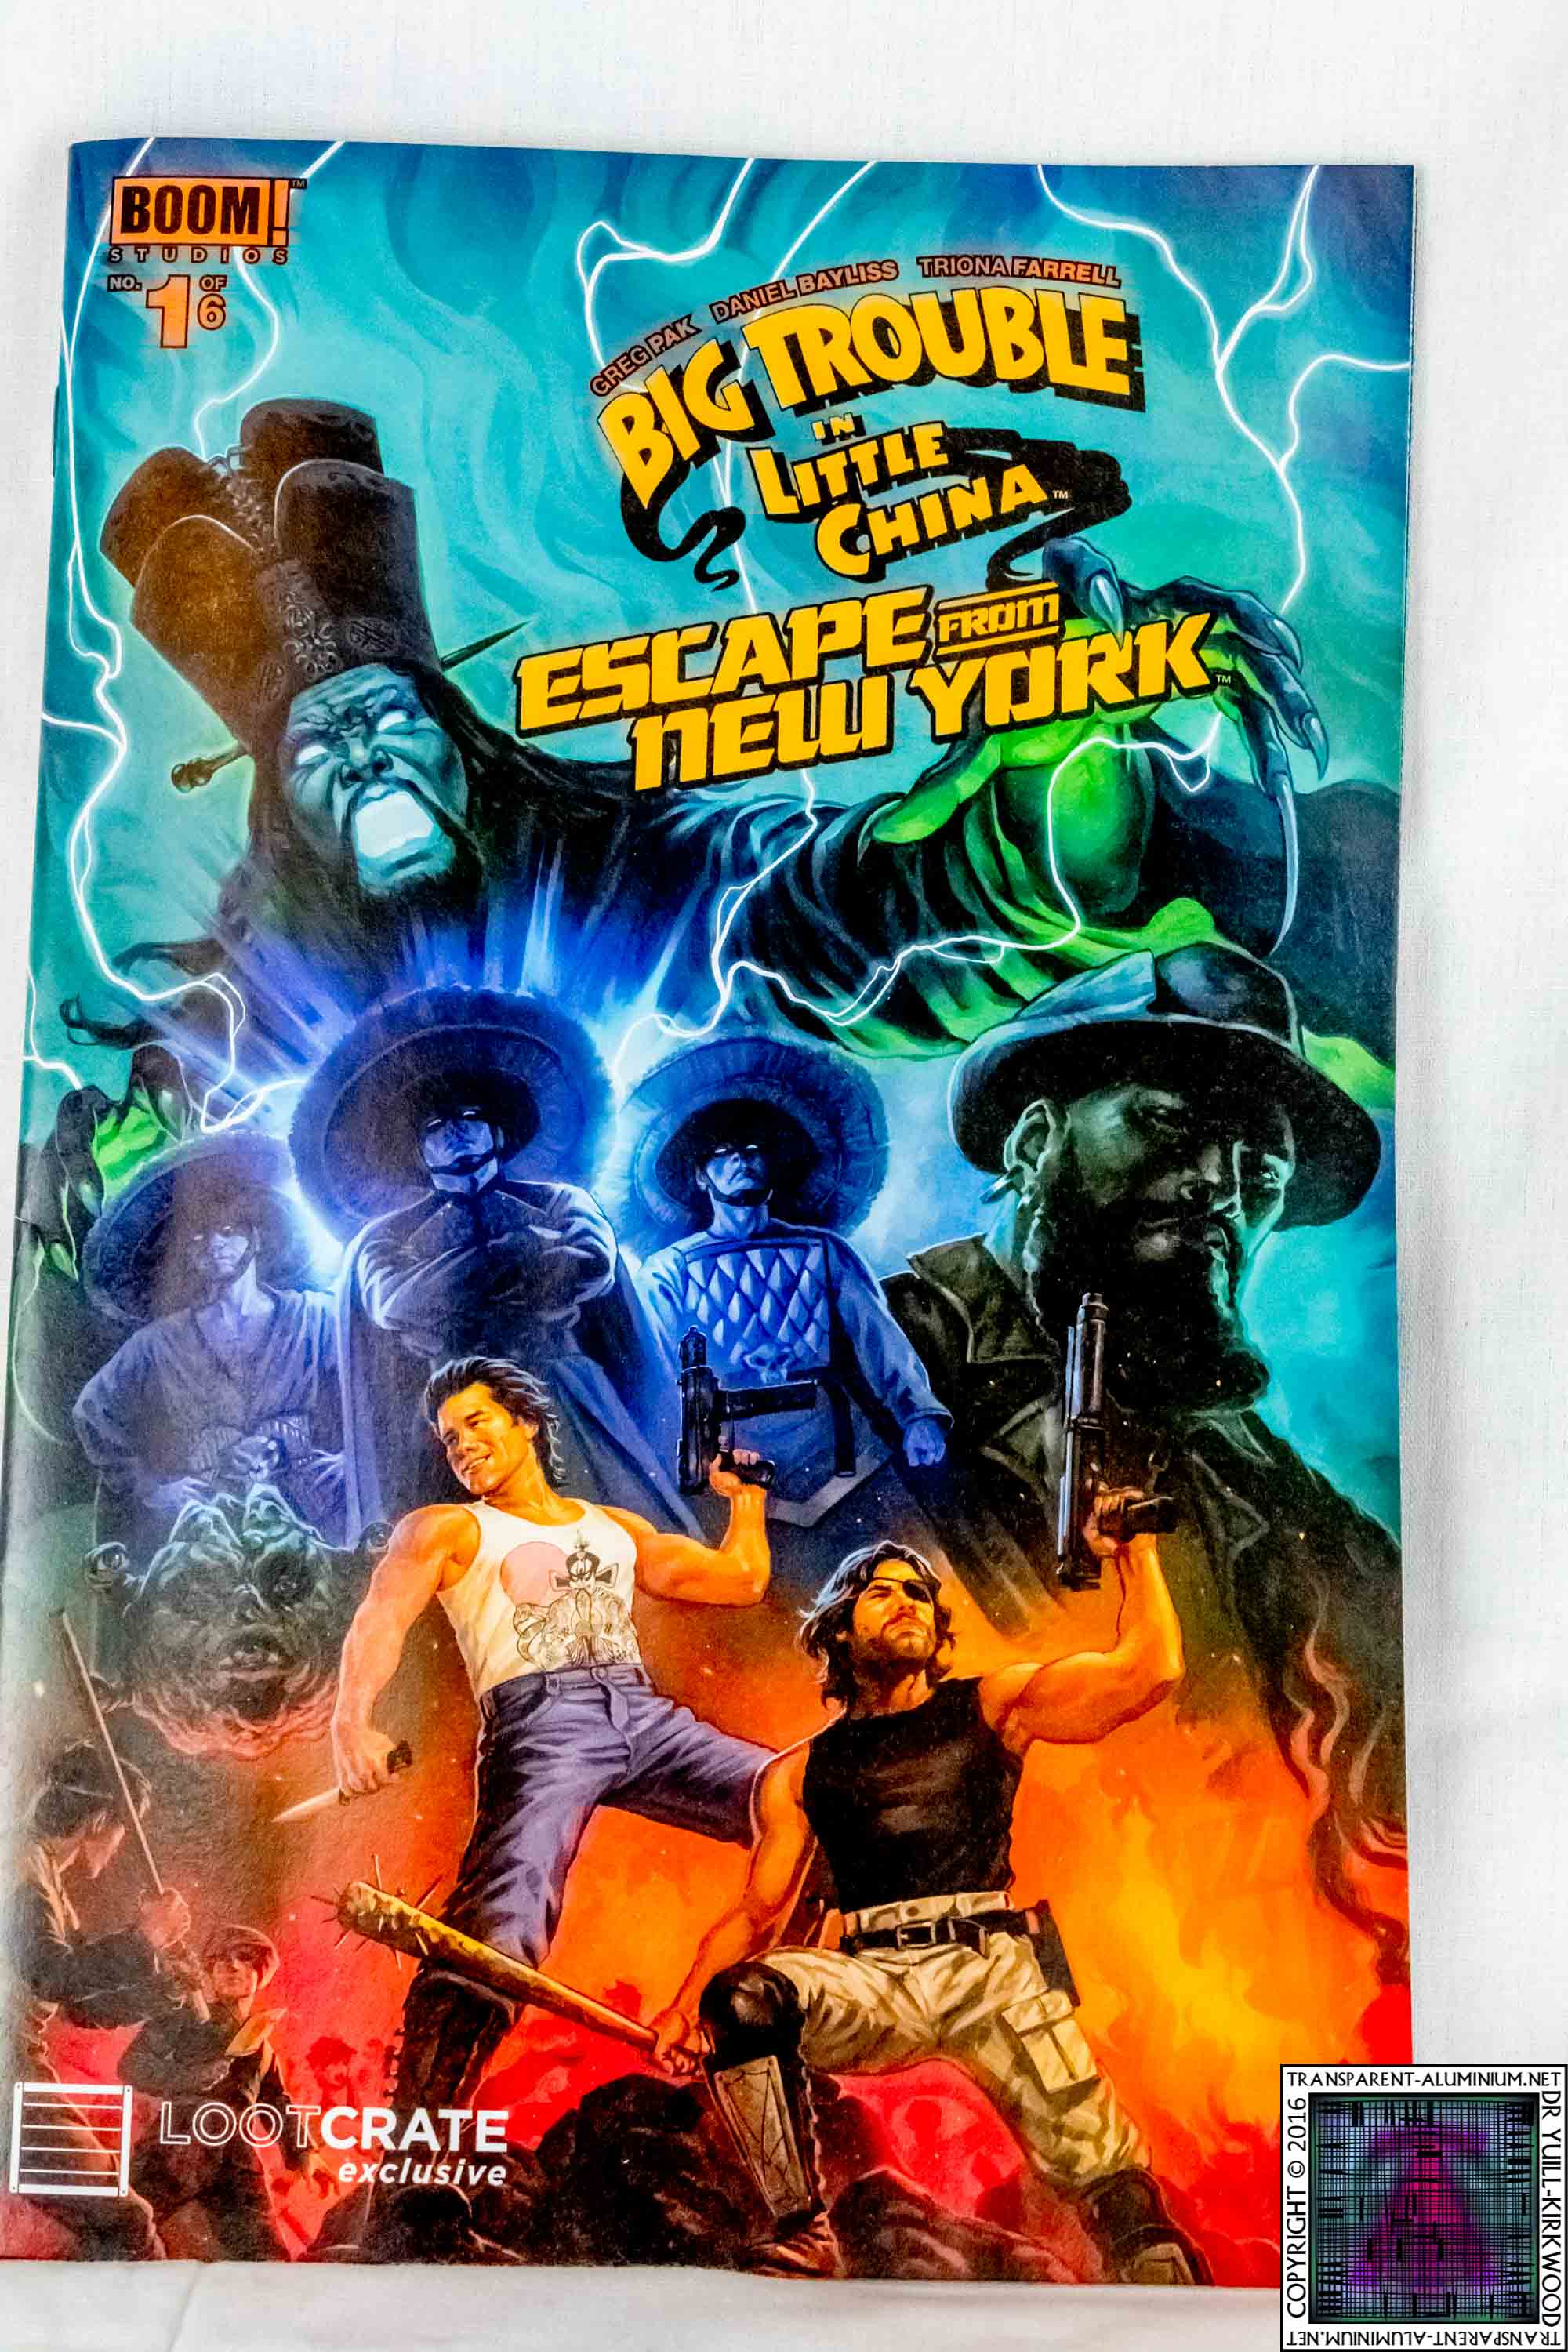 Big-Trouble-on-Little-China-Escape-From-New-York-Comic-1